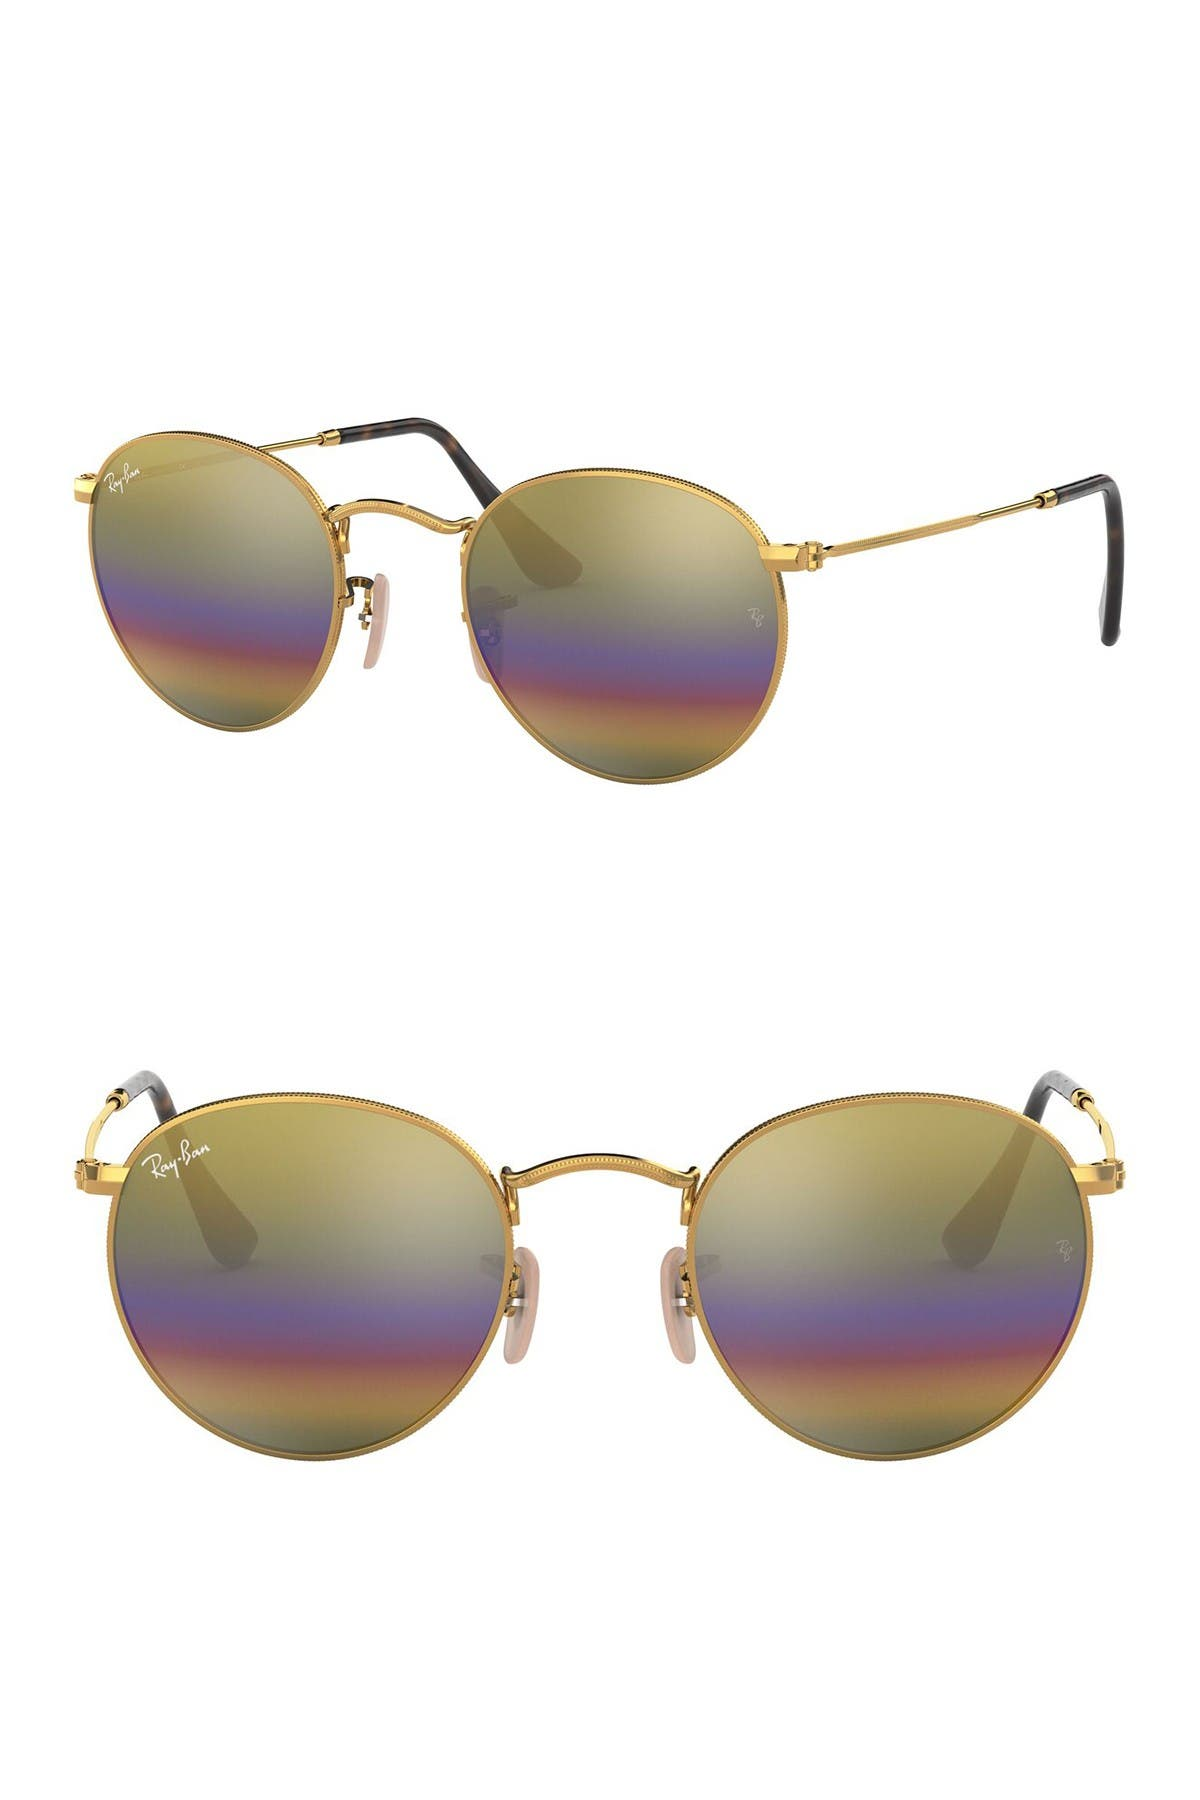 Image of Ray-Ban 53mm Round  Sunglasses